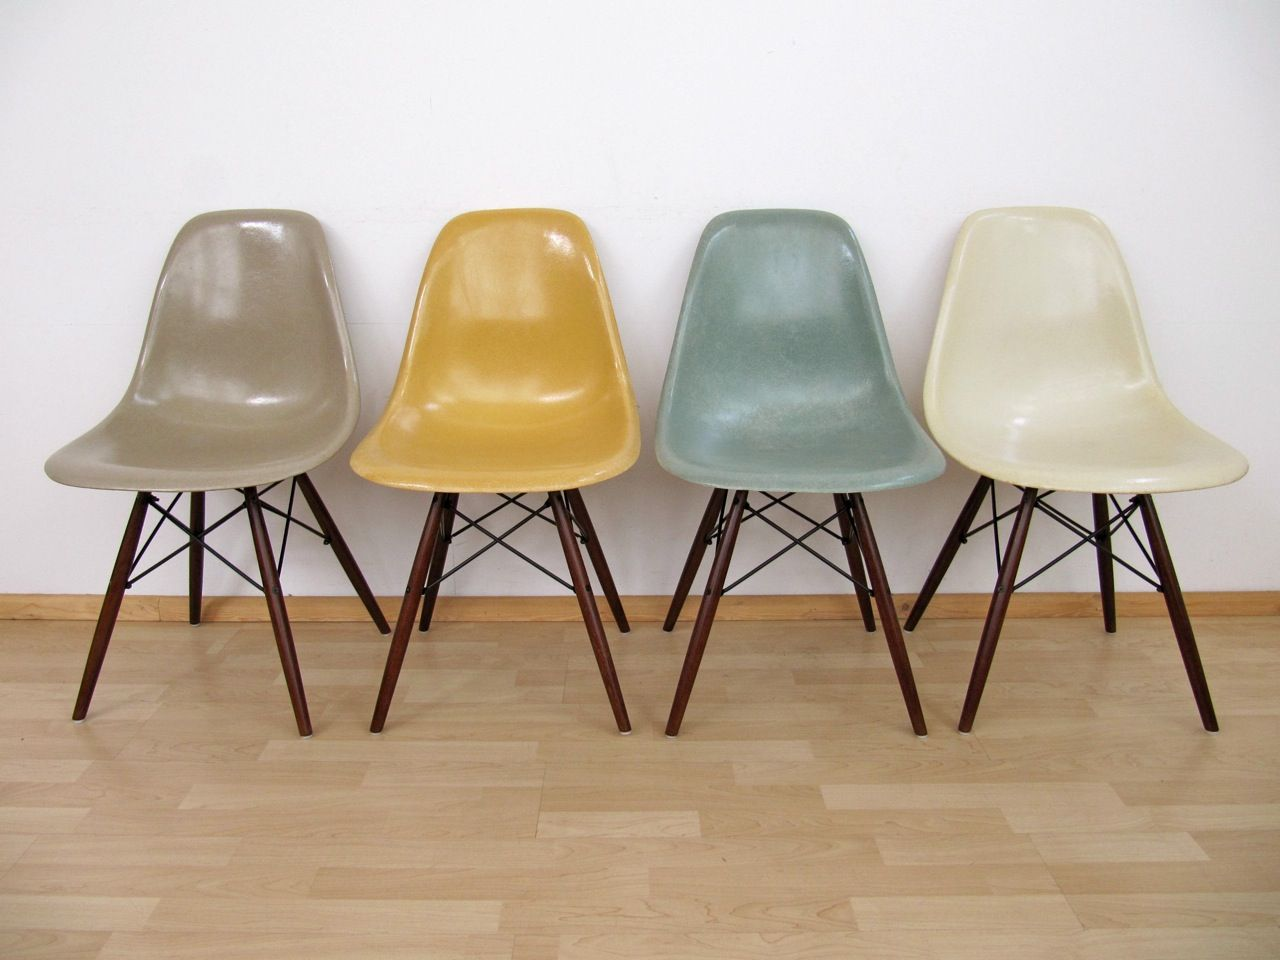 Eames Vitra Stuhl Kaufen Eames Chairs Vitra Taupe Yellow Blue Cream Love The Color